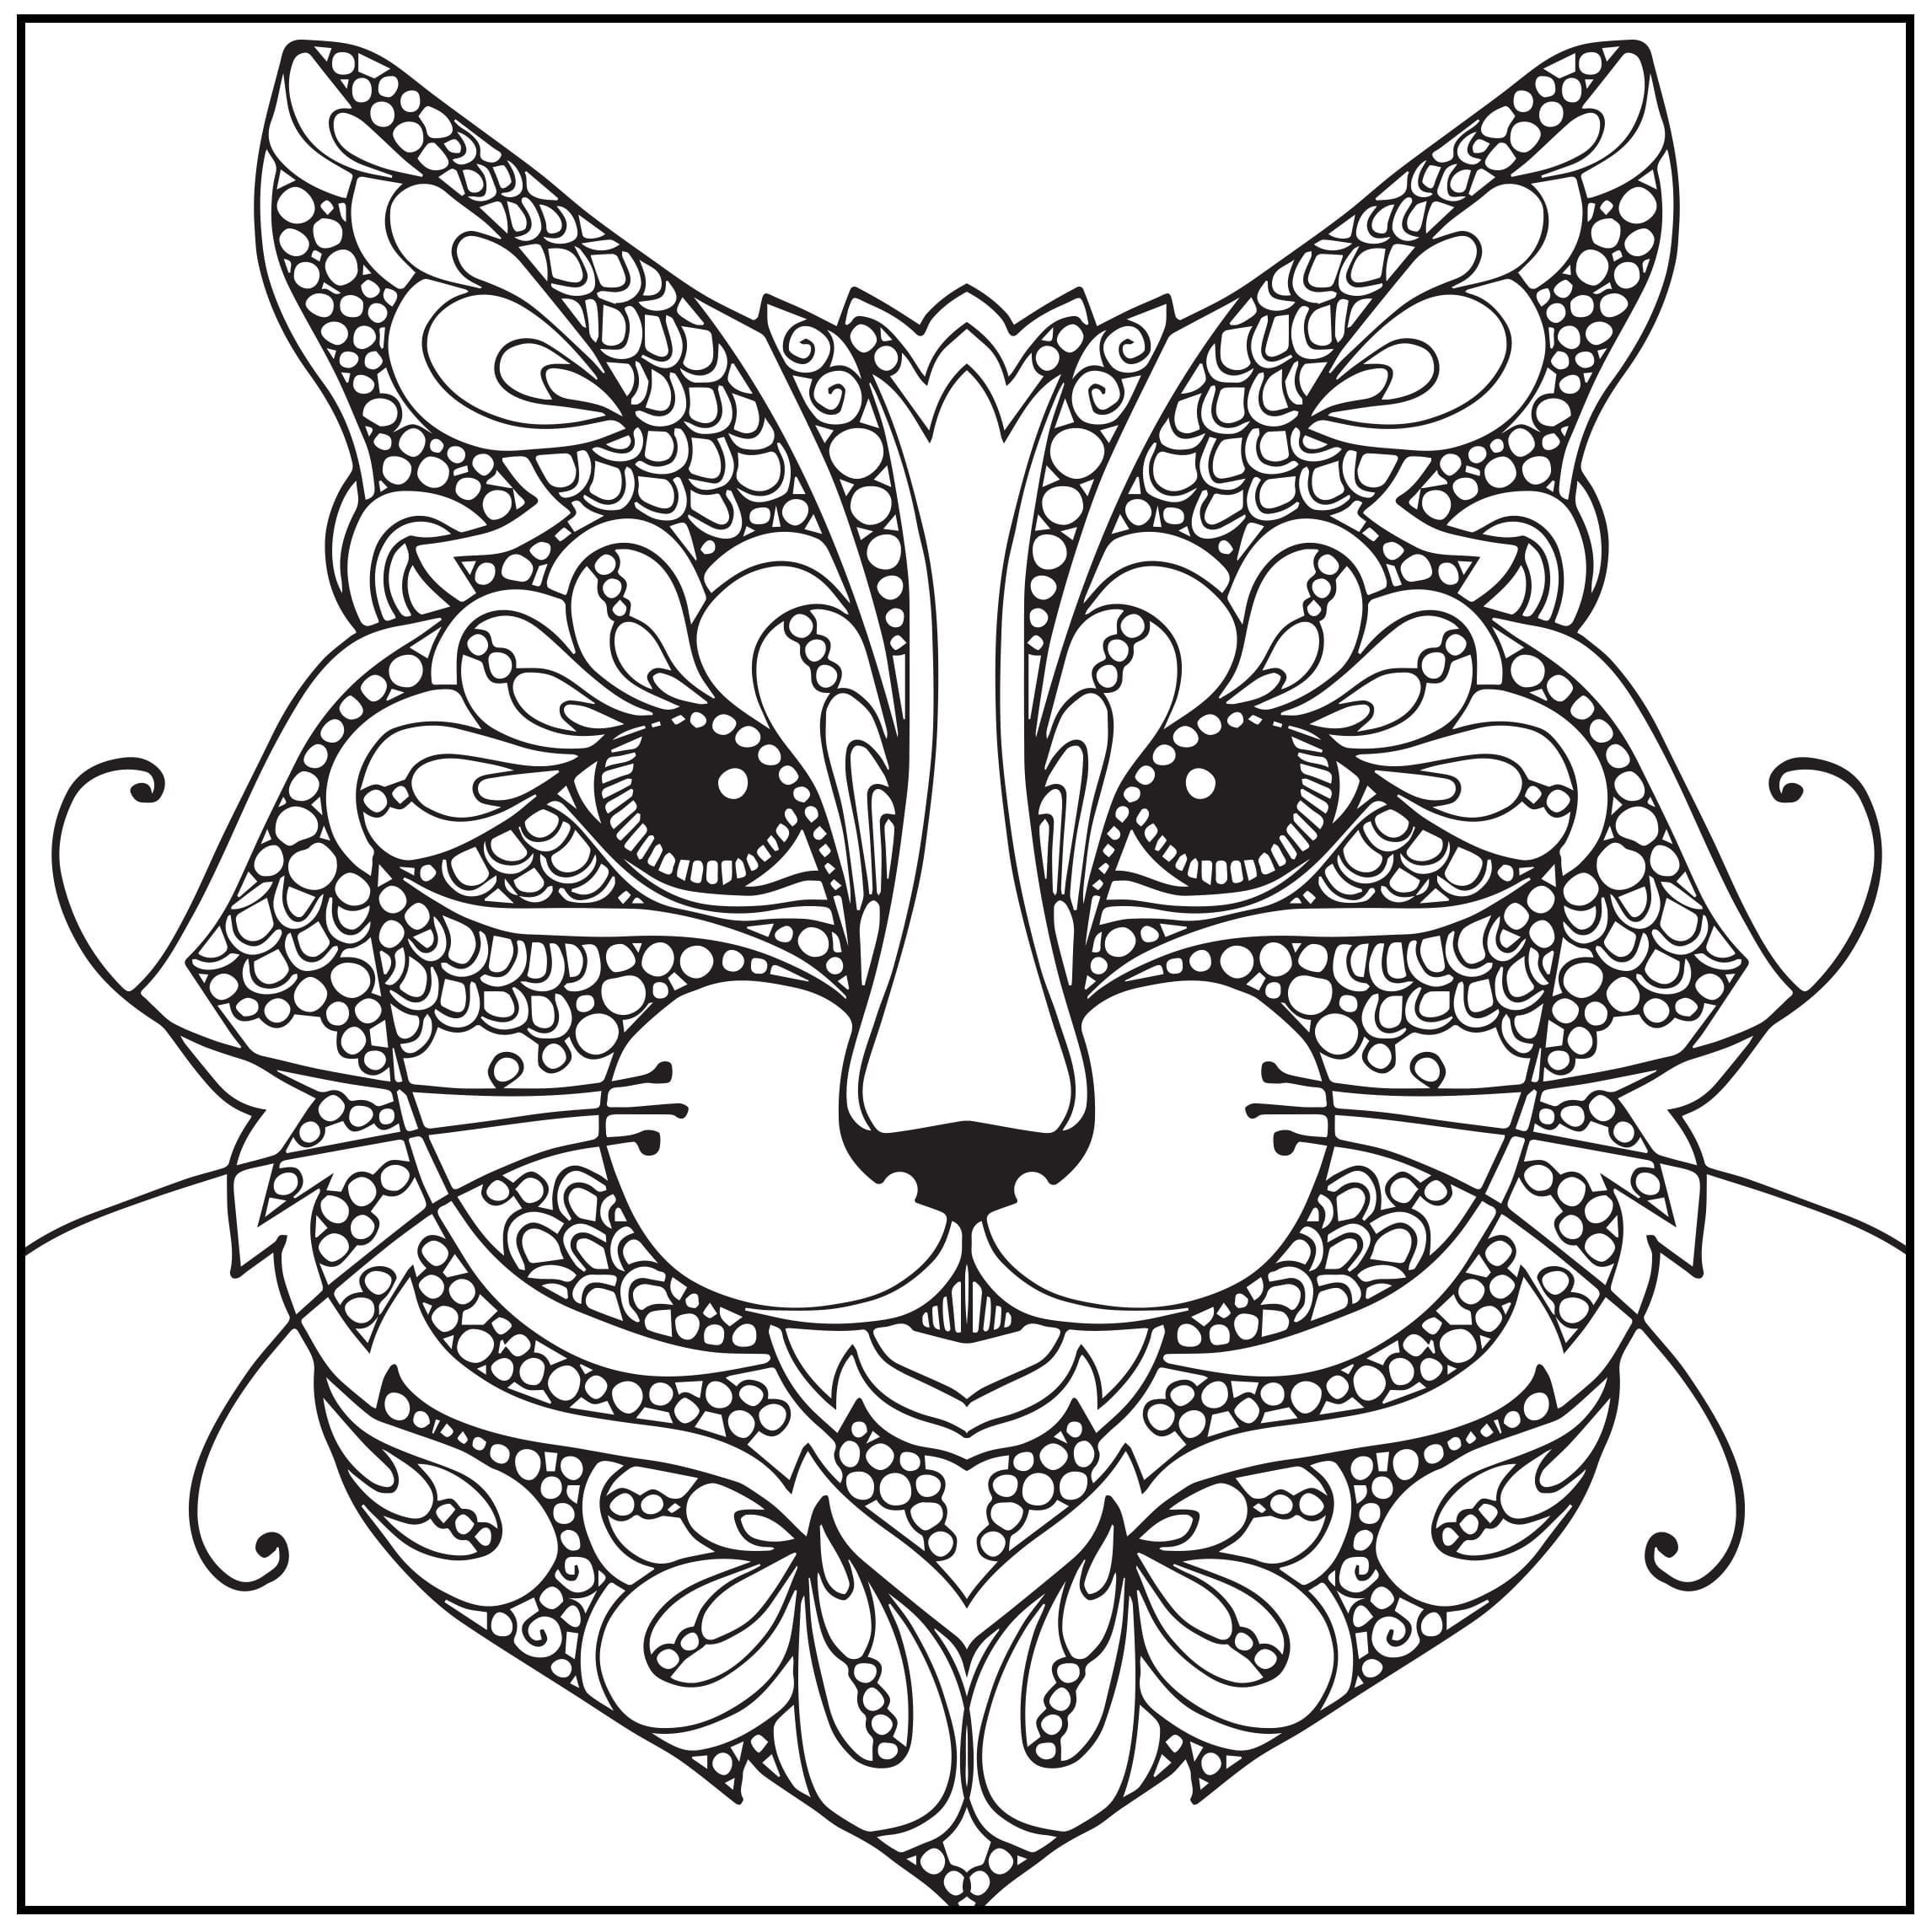 Directly Fromite Amazon Com Adult Coloring Book Wild About Books